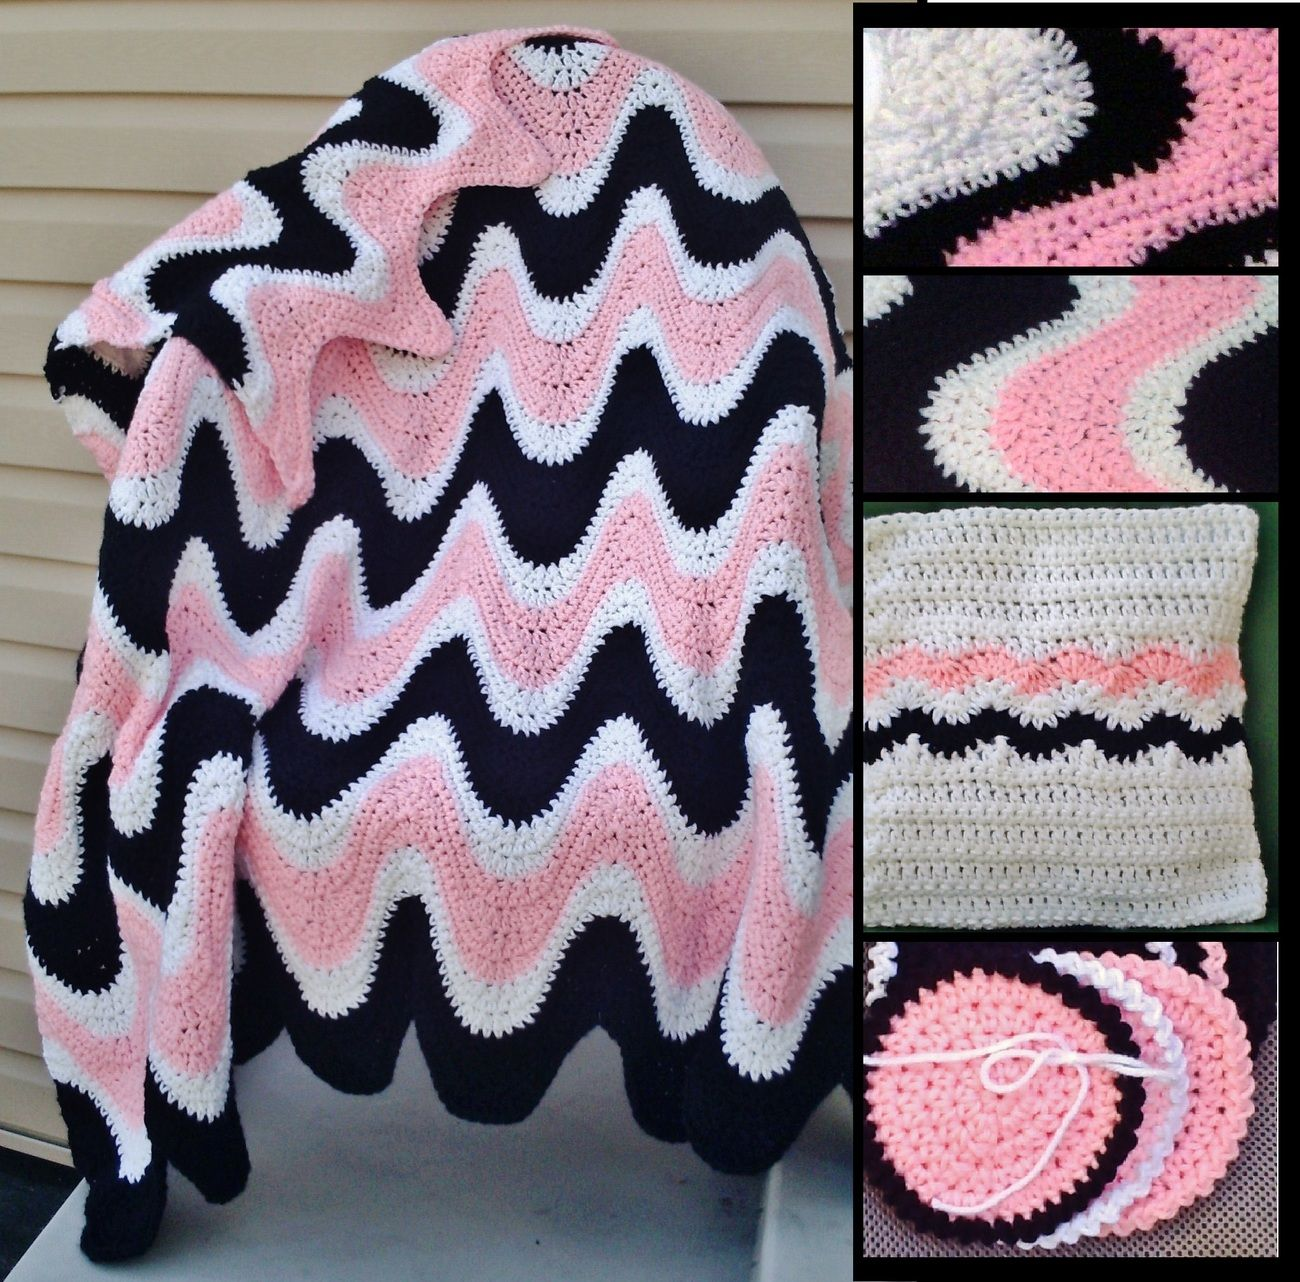 Beautiful crochet pattern 102b pdffor 3 color exaggerated ripple crochet pattern 102b pdffor 3 color exaggerated ripple afghan pillow coasters bankloansurffo Gallery